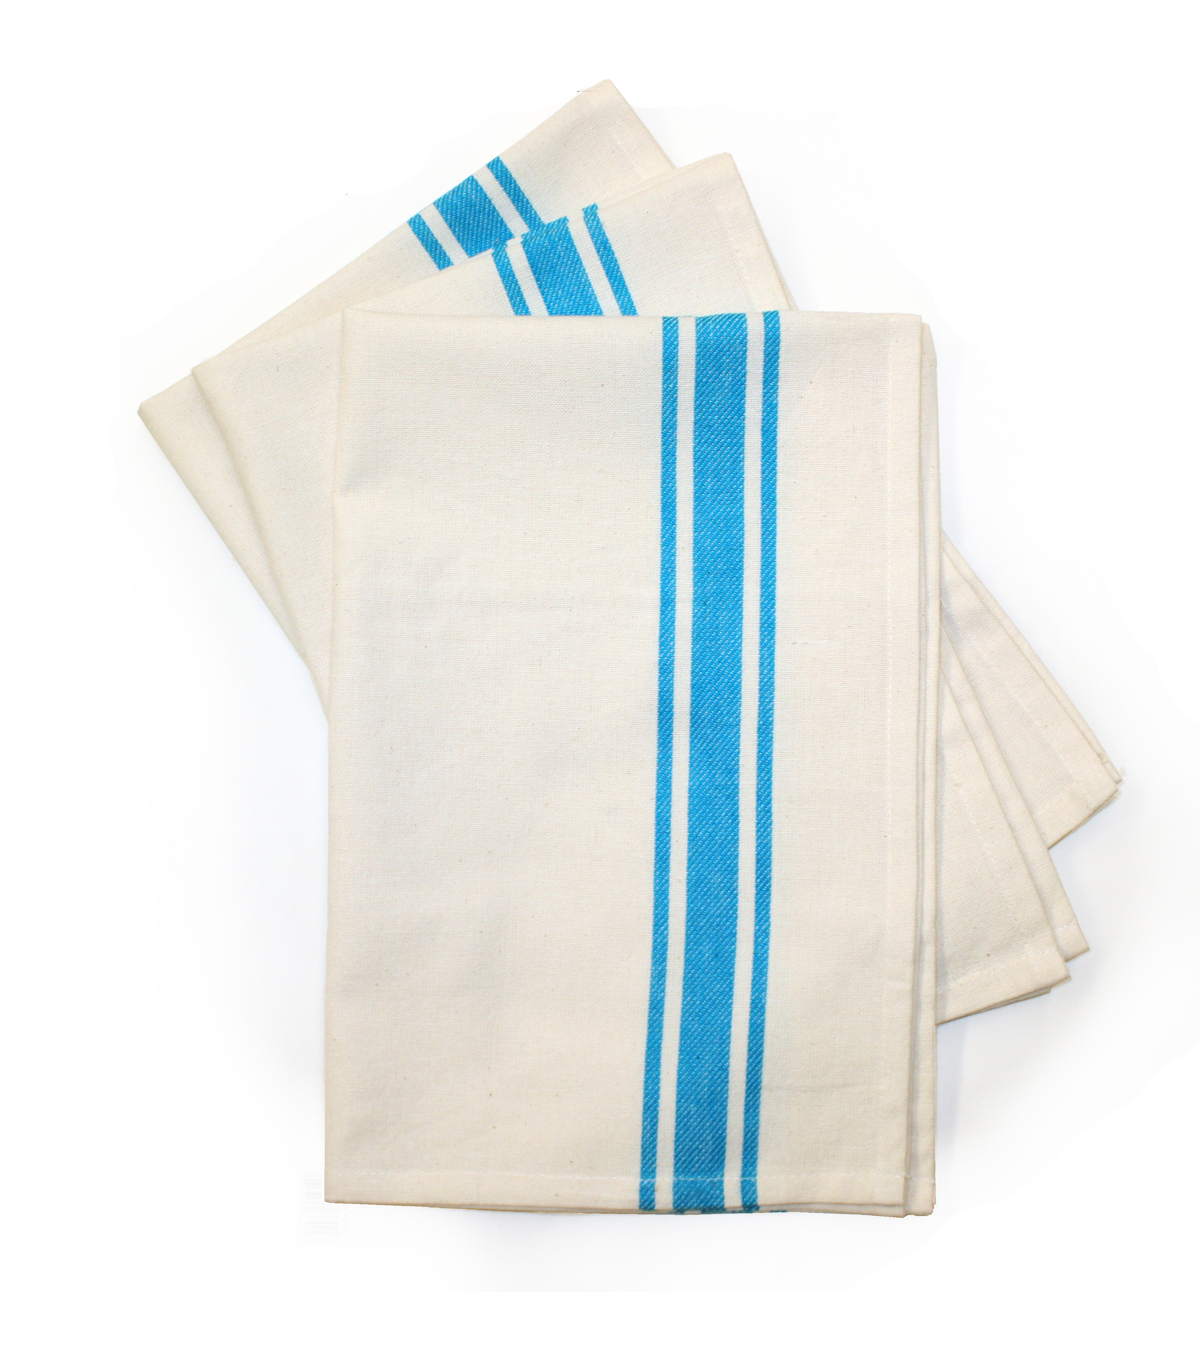 Stitch \u0027Em Up 3 Pack 18\u0027\u0027x28\u0027\u0027 Retro Towels-Turquoise Stripe